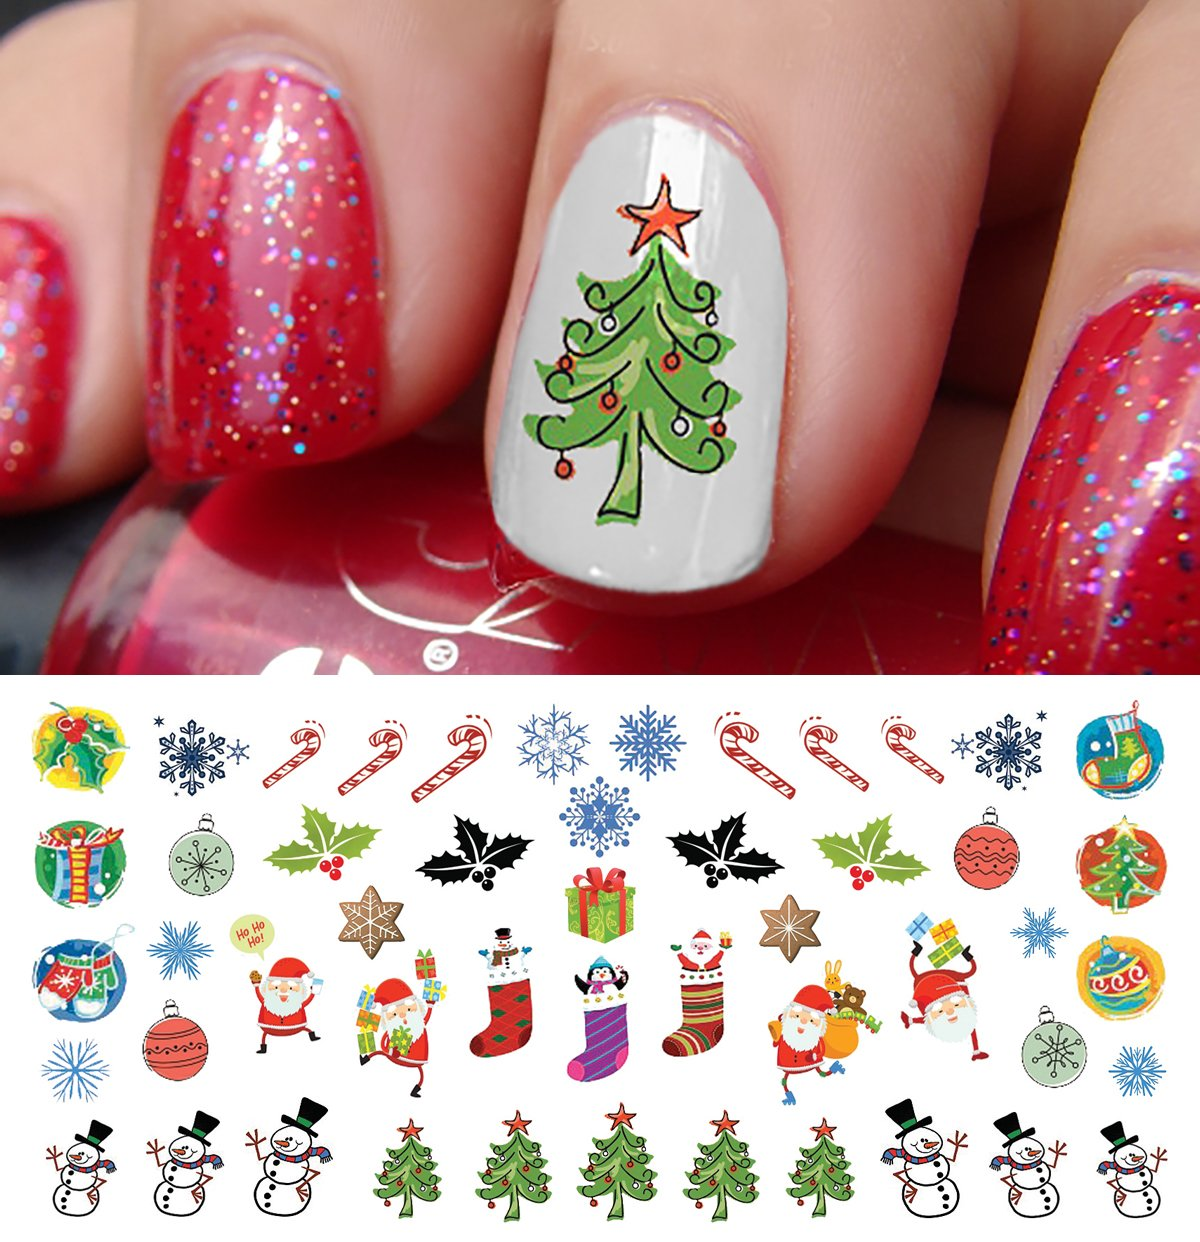 Amazon.com: Christmas Holiday Assortment Water Slide Nail Art Decals ...